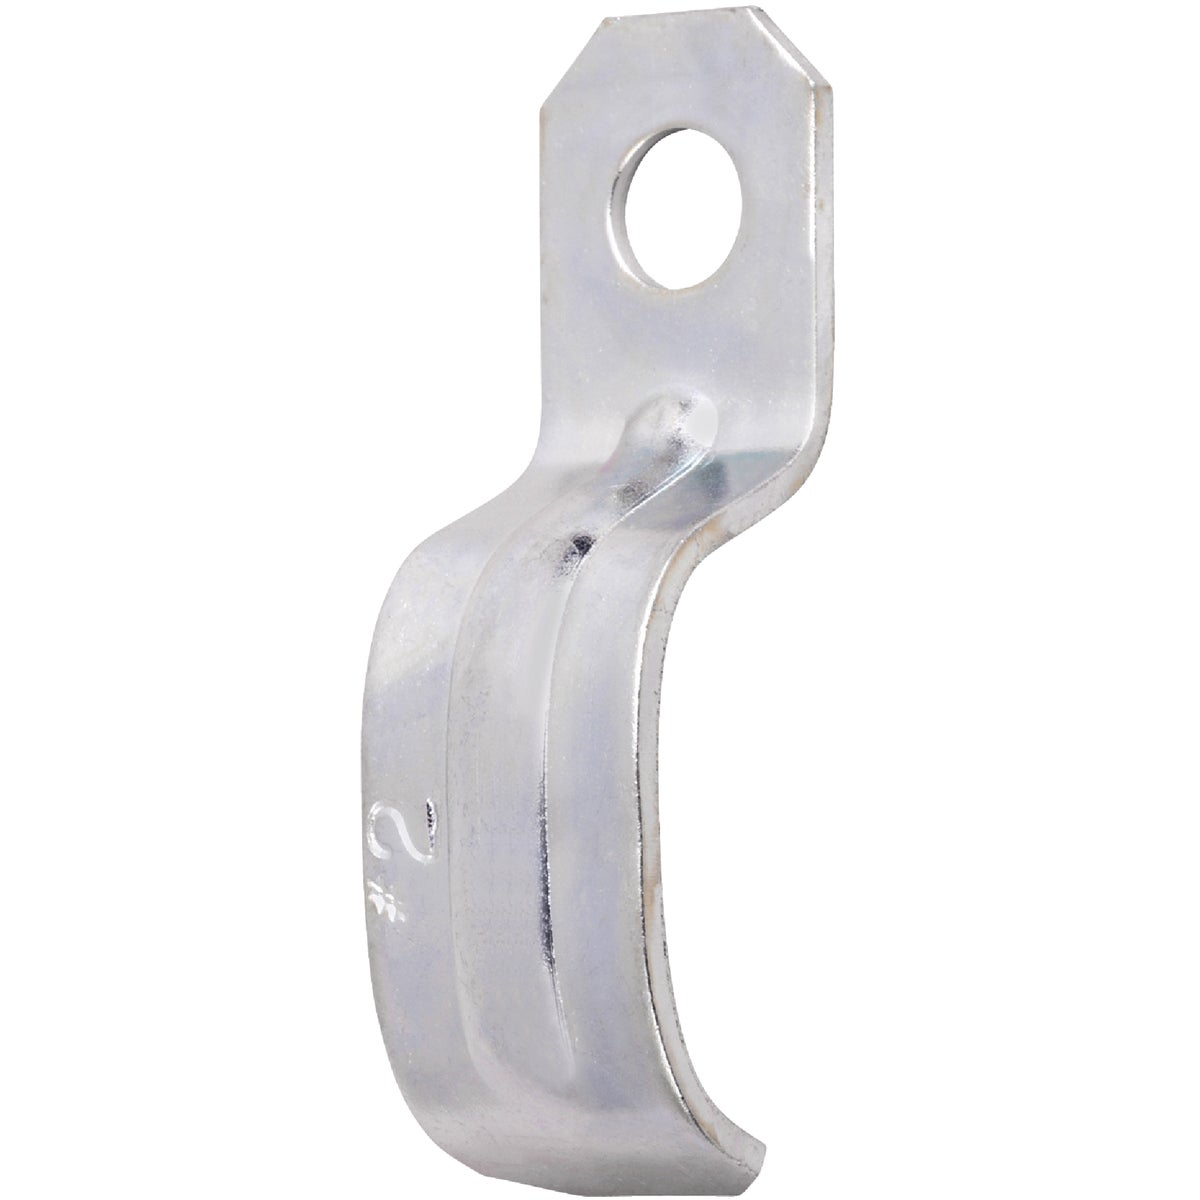 3PK 1-HOLE STRAP - SE1013 by Thomas & Betts